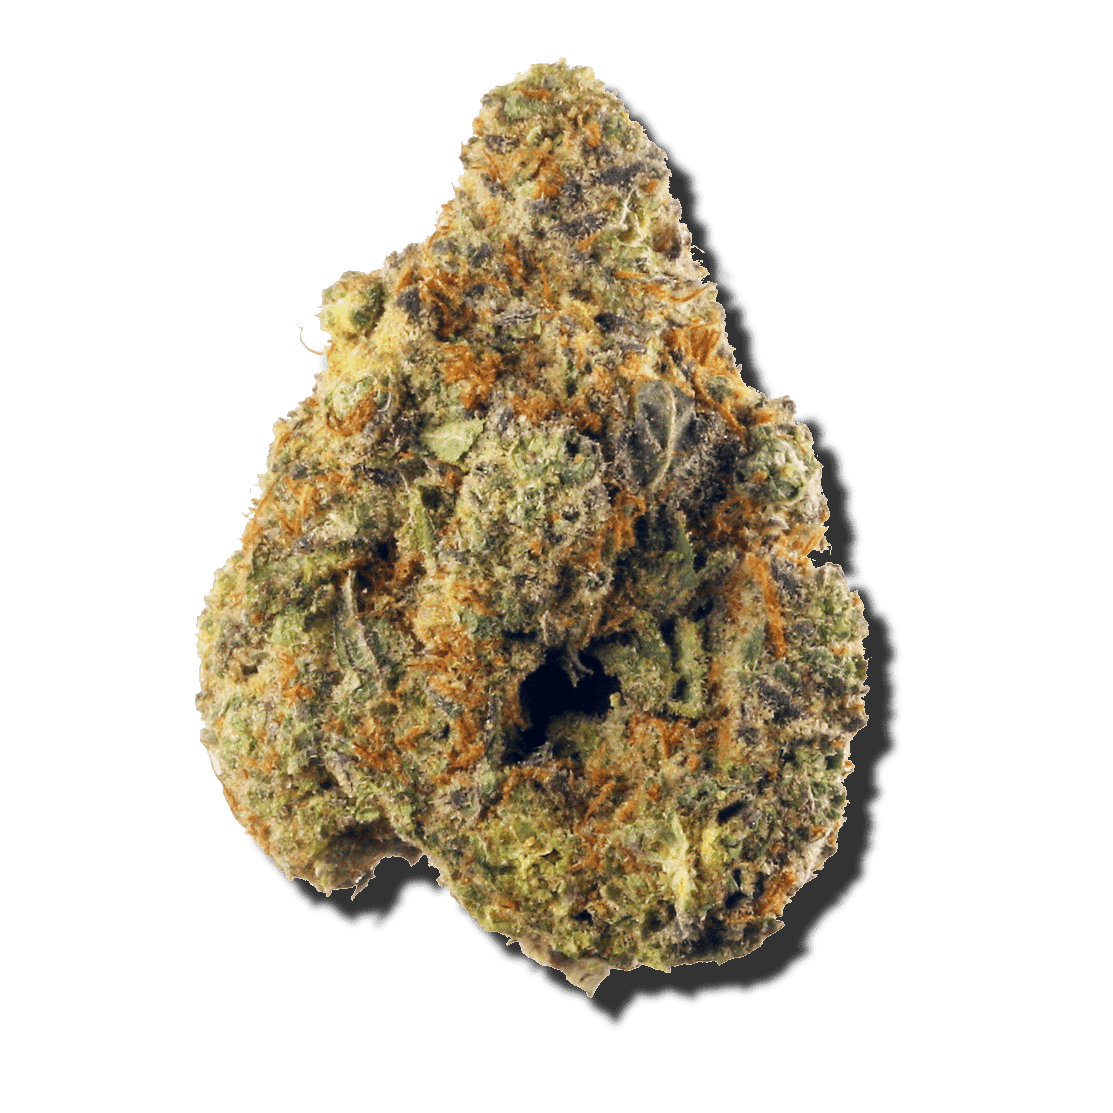 Buy weed online at Ganja West allows you to get the appropriate product